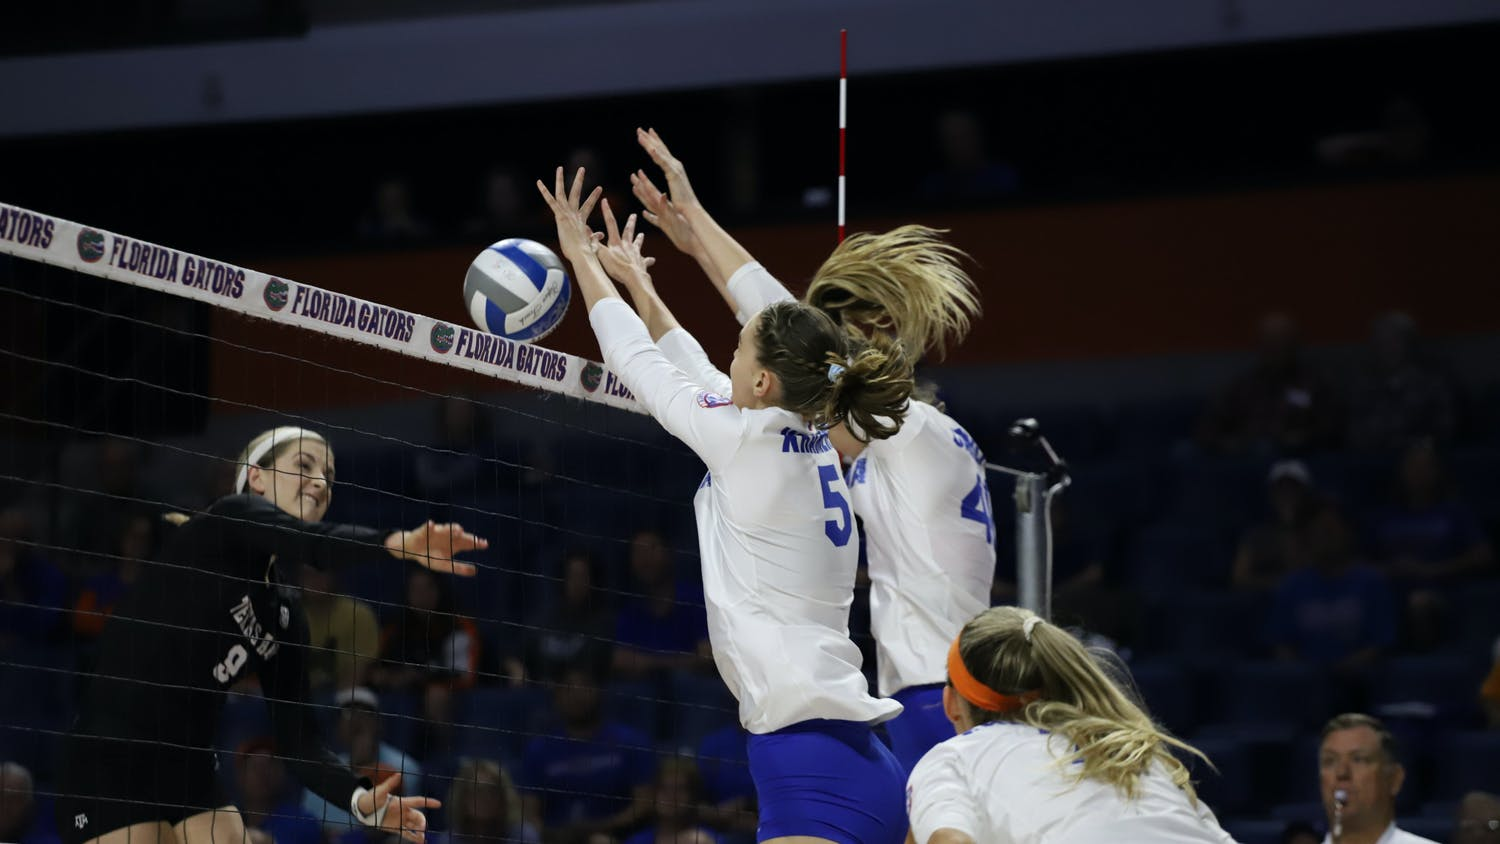 The Gators fall in five sets to the undefeated Wisconsin Badgers Monday afternoon. Photo from UF-Texas A&M game in 2019.